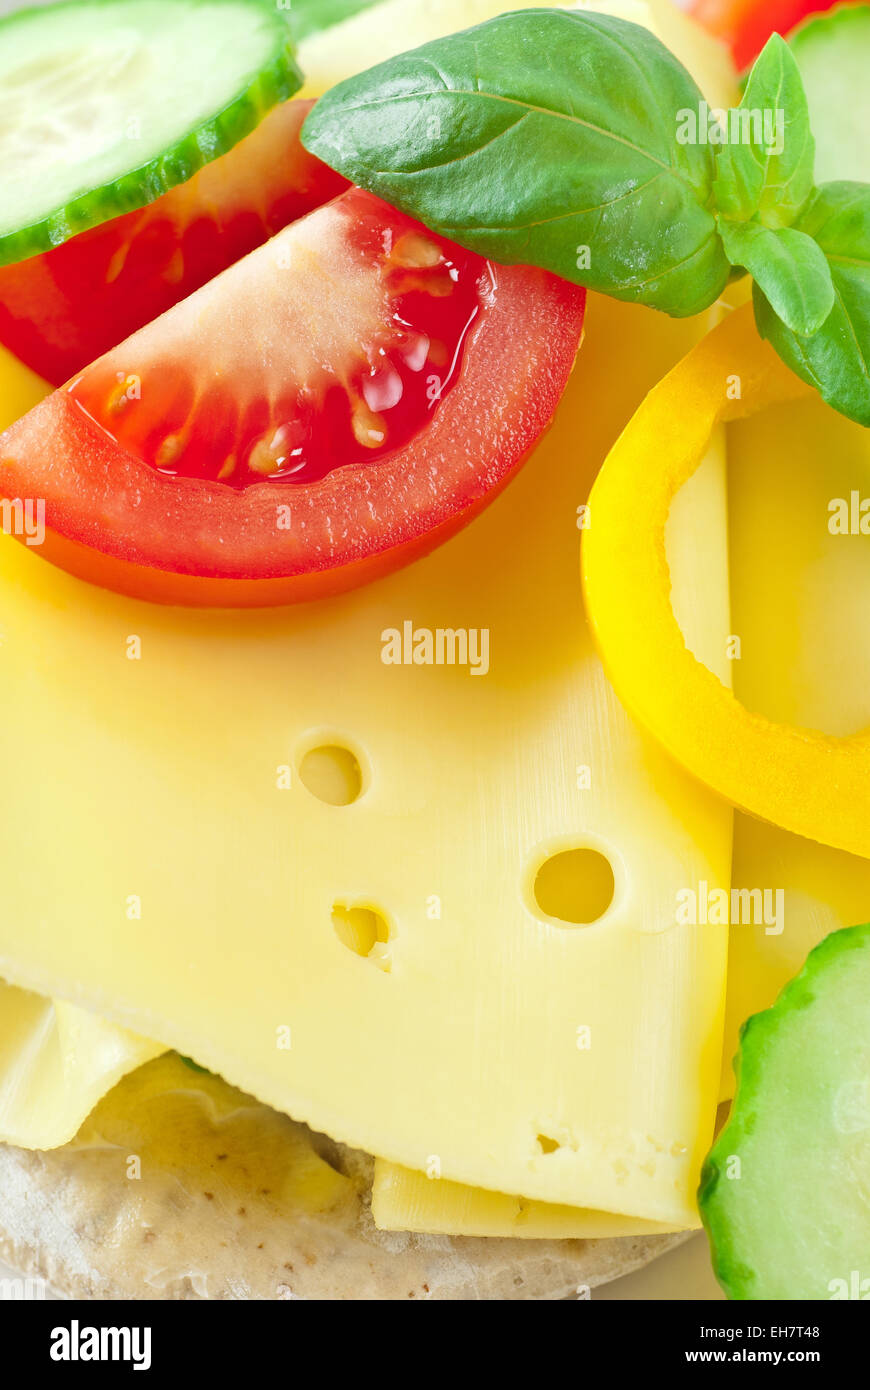 Cheese sandwich with tomato, yellow bell pepper and cucumber. - Stock Image